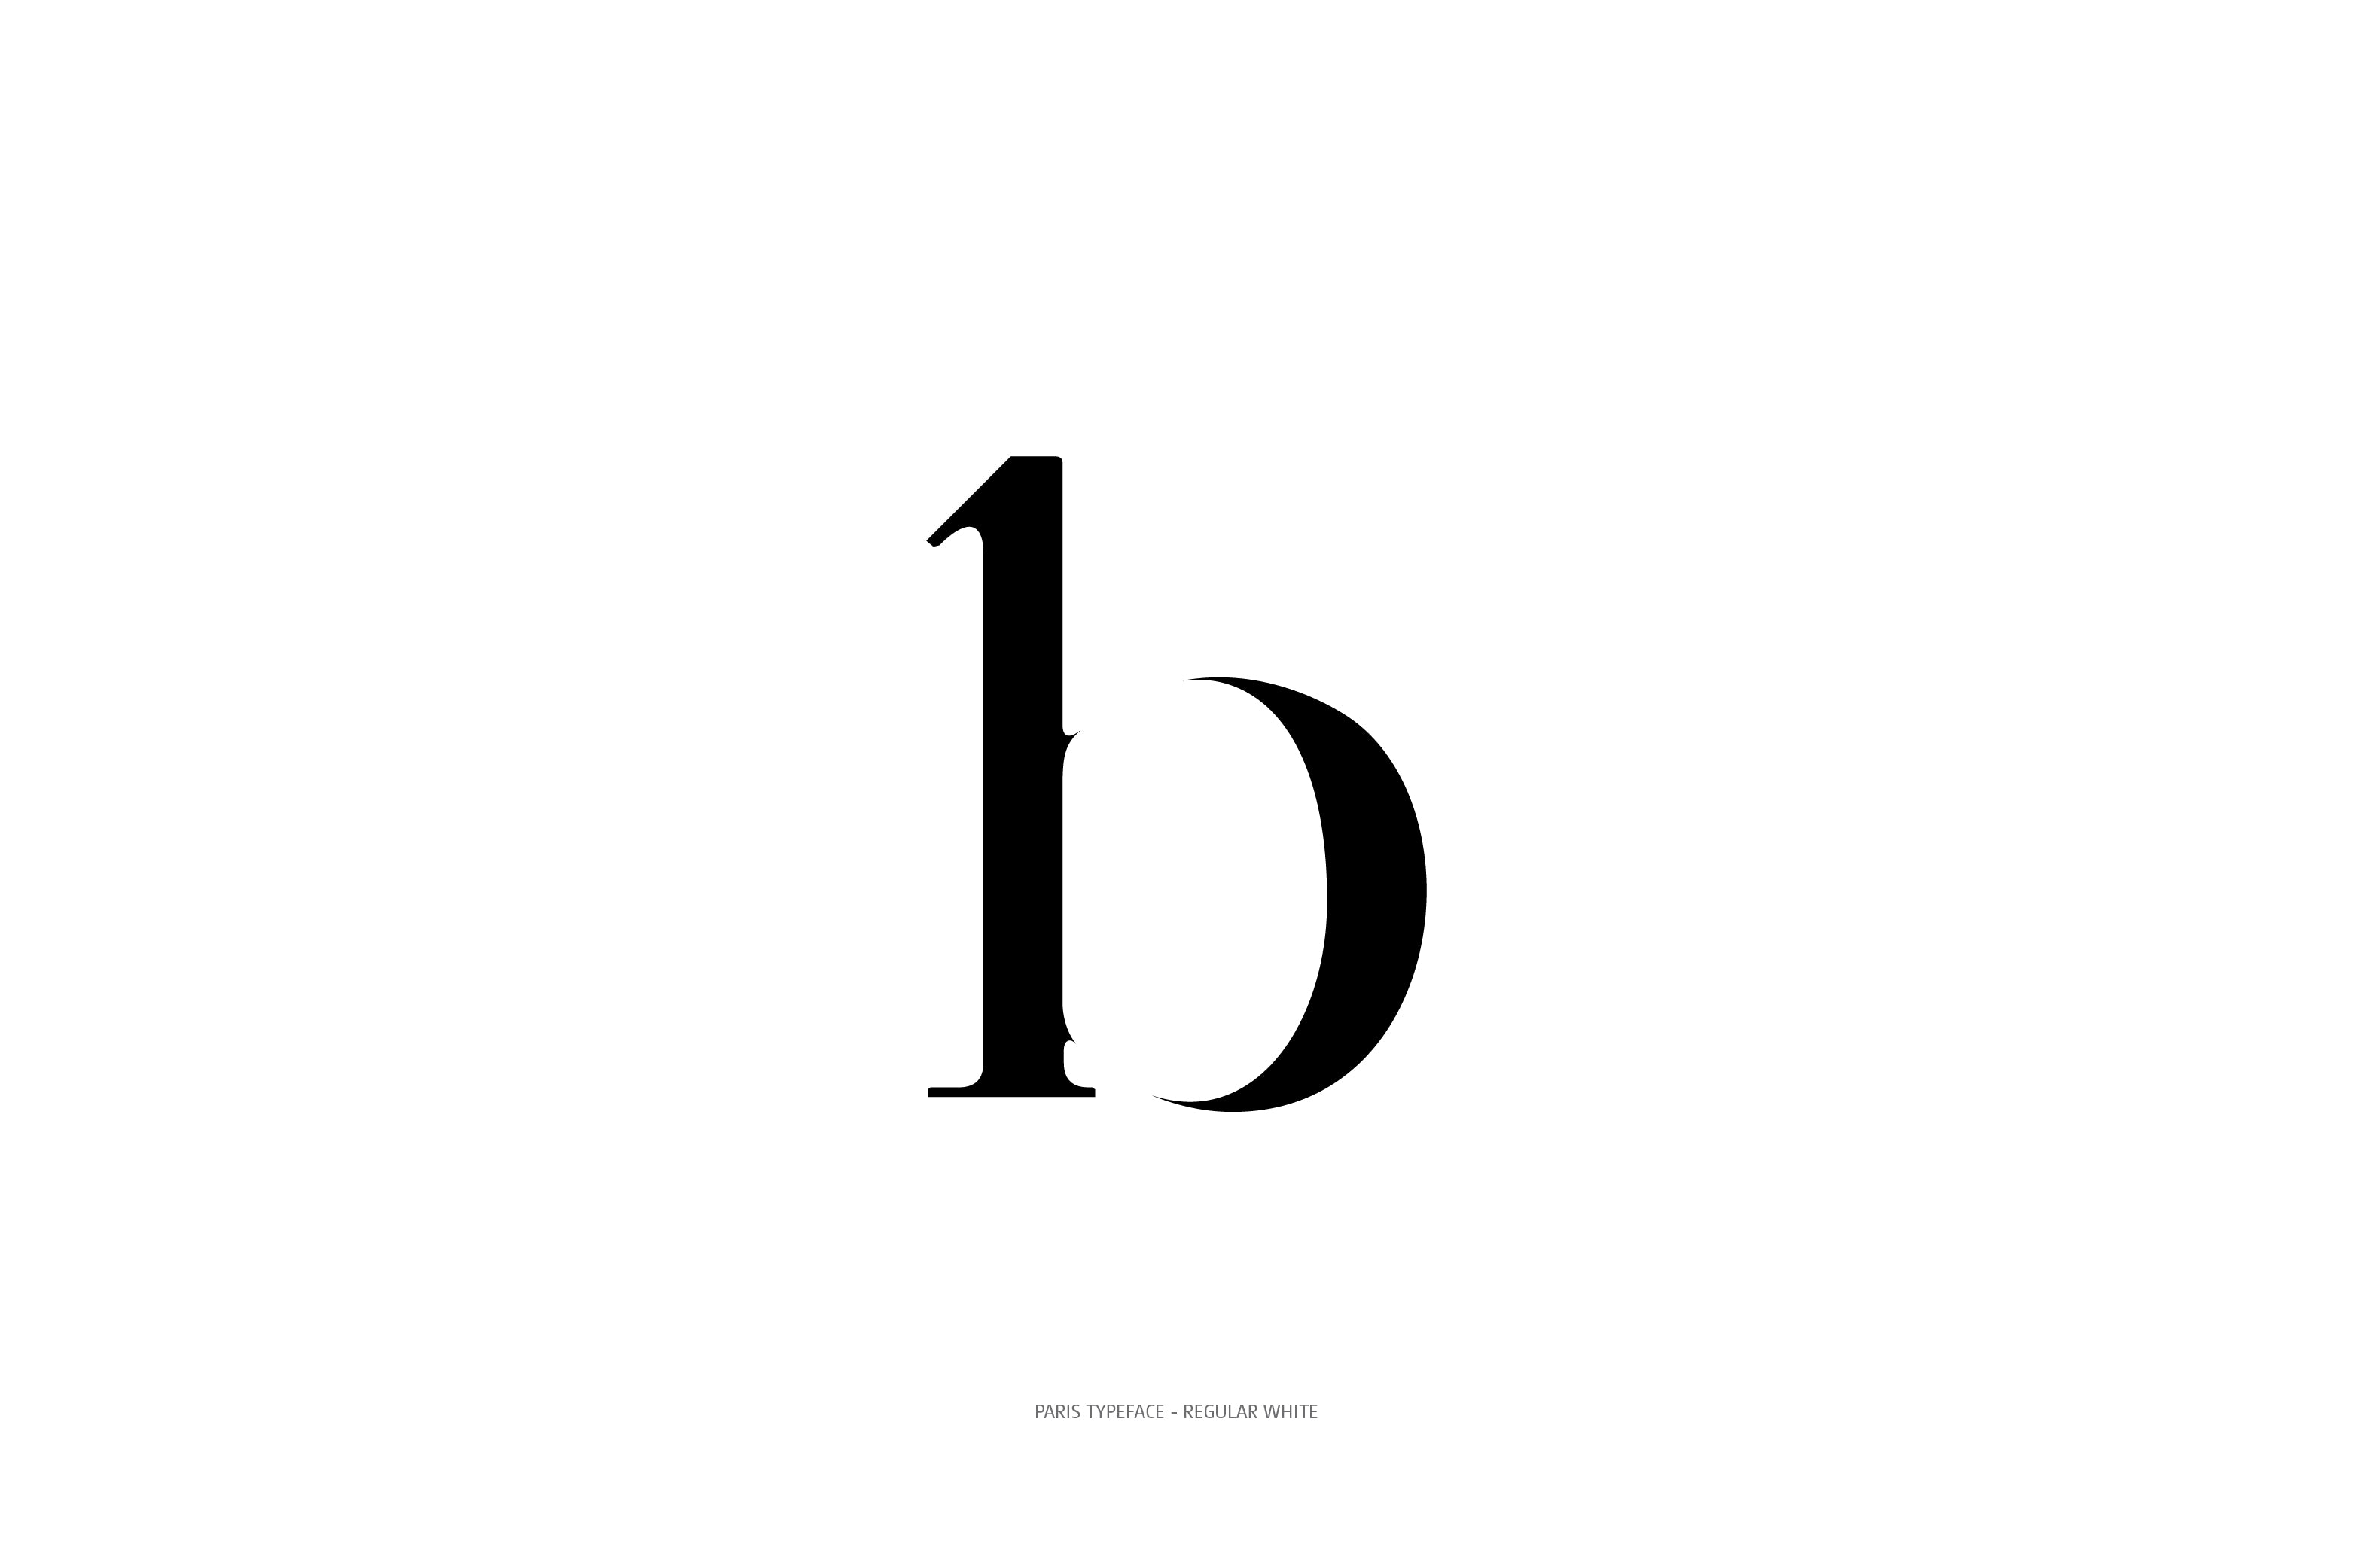 Paris Typeface Regular White b